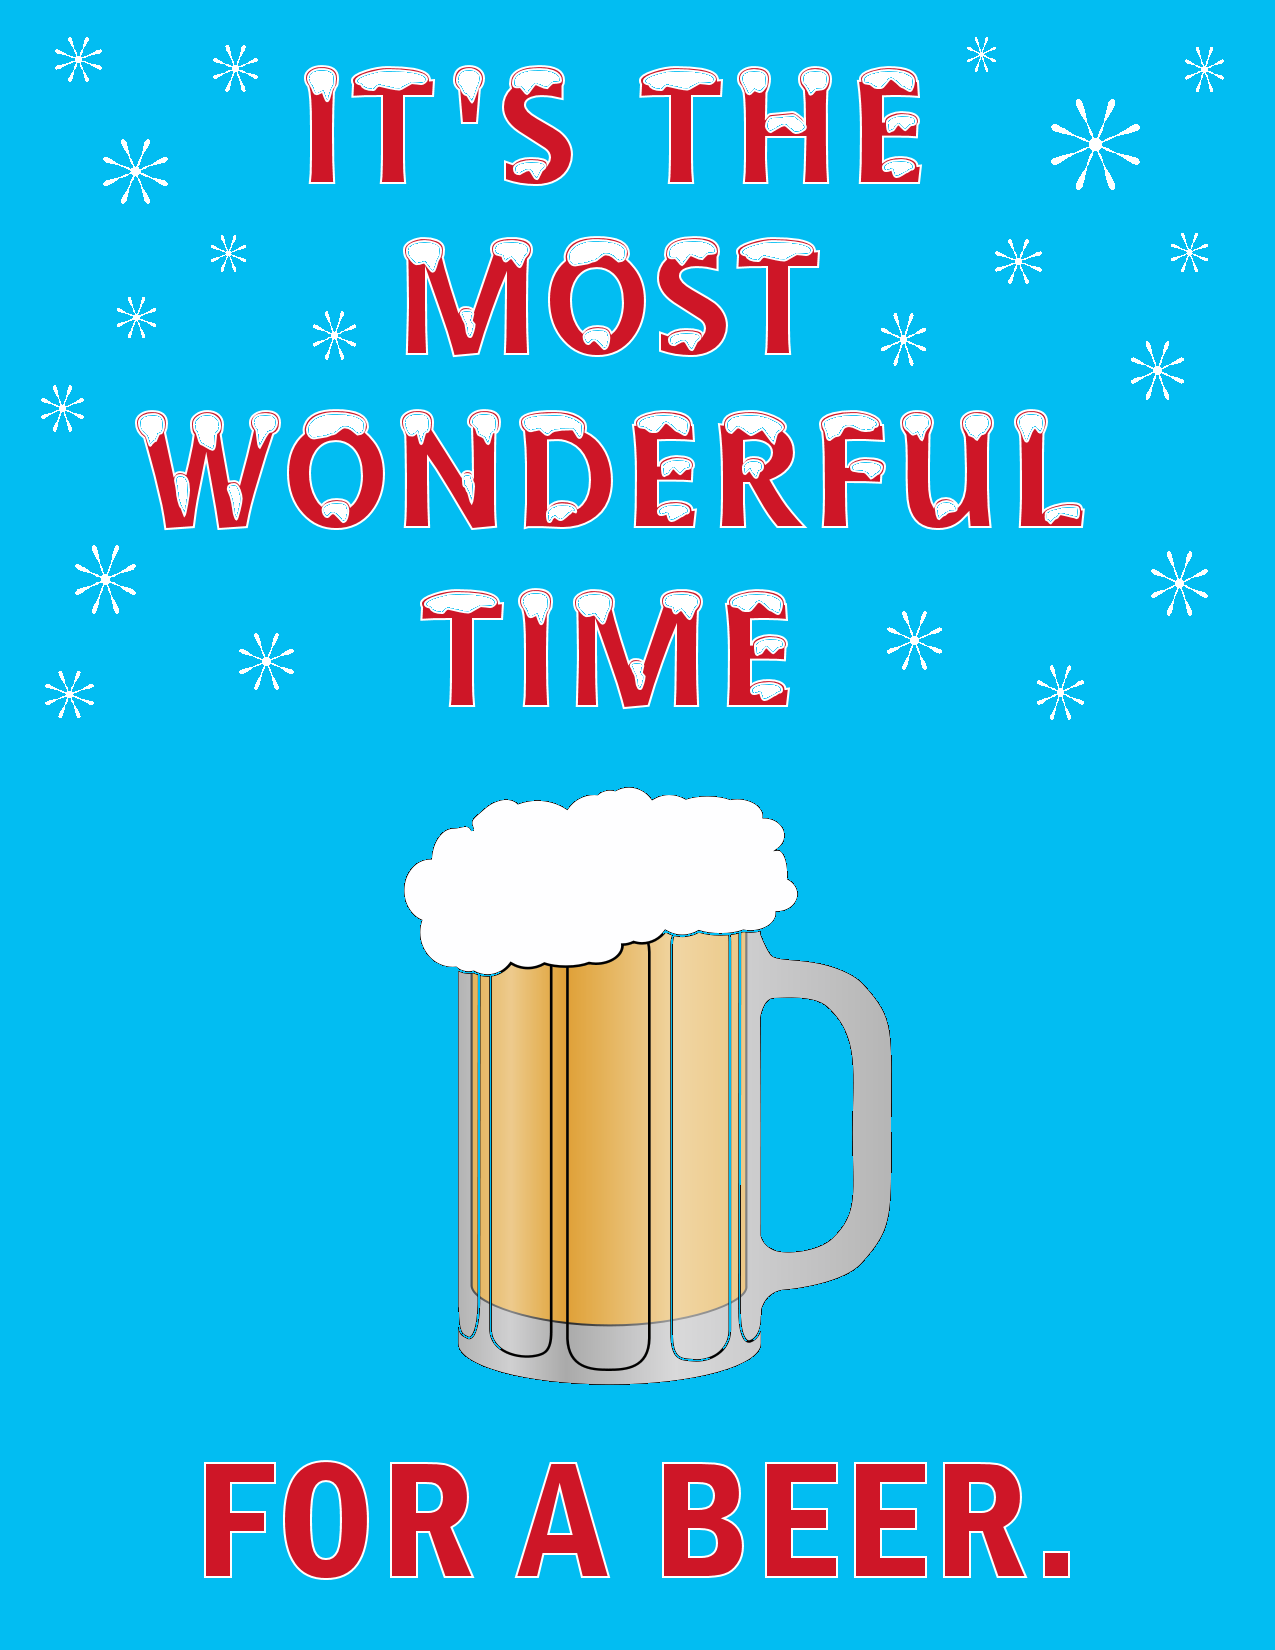 Most Wonderful Time for a Beer